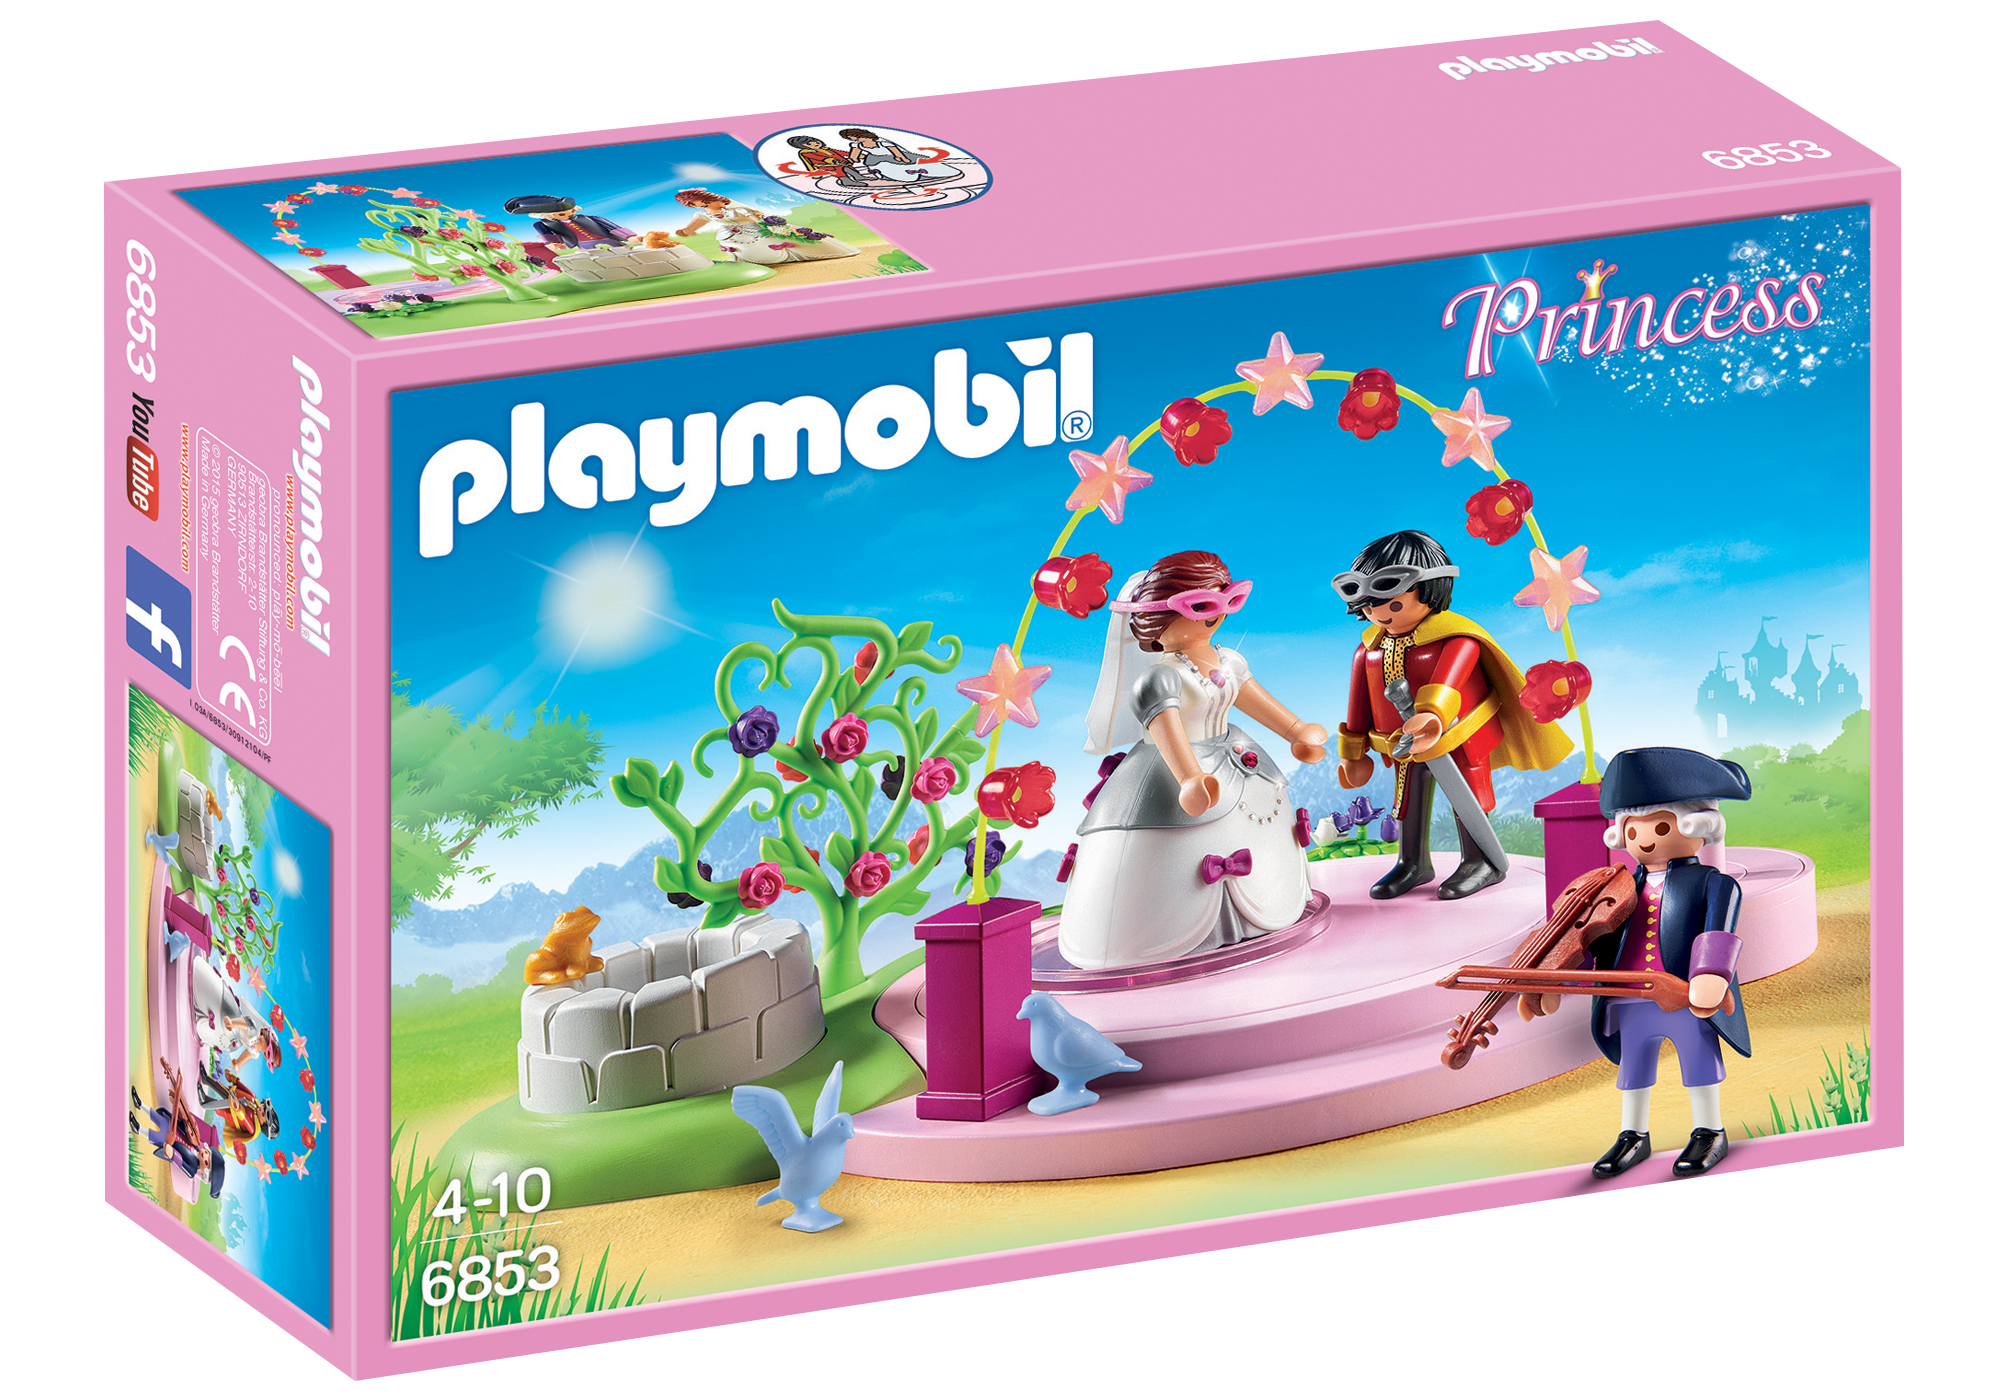 http://media.playmobil.com/i/playmobil/6853_product_box_front